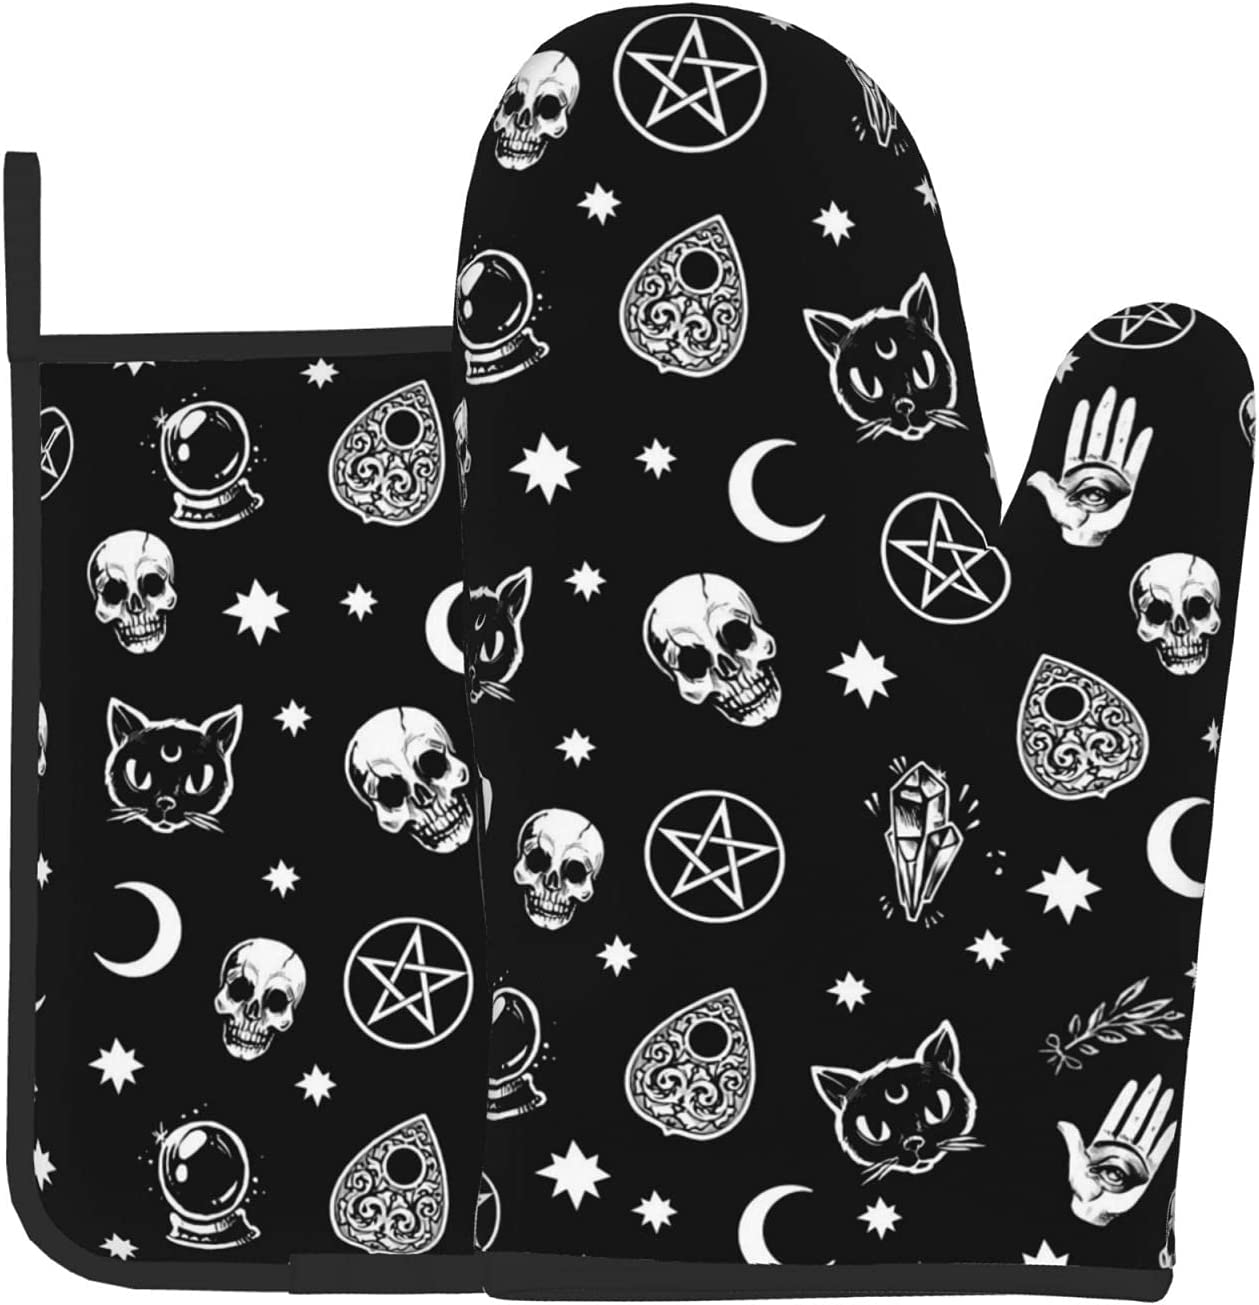 Gothic Skull Cat Moon Oven Mitts Resistant Deluxe and Rare Holders Pot Sets